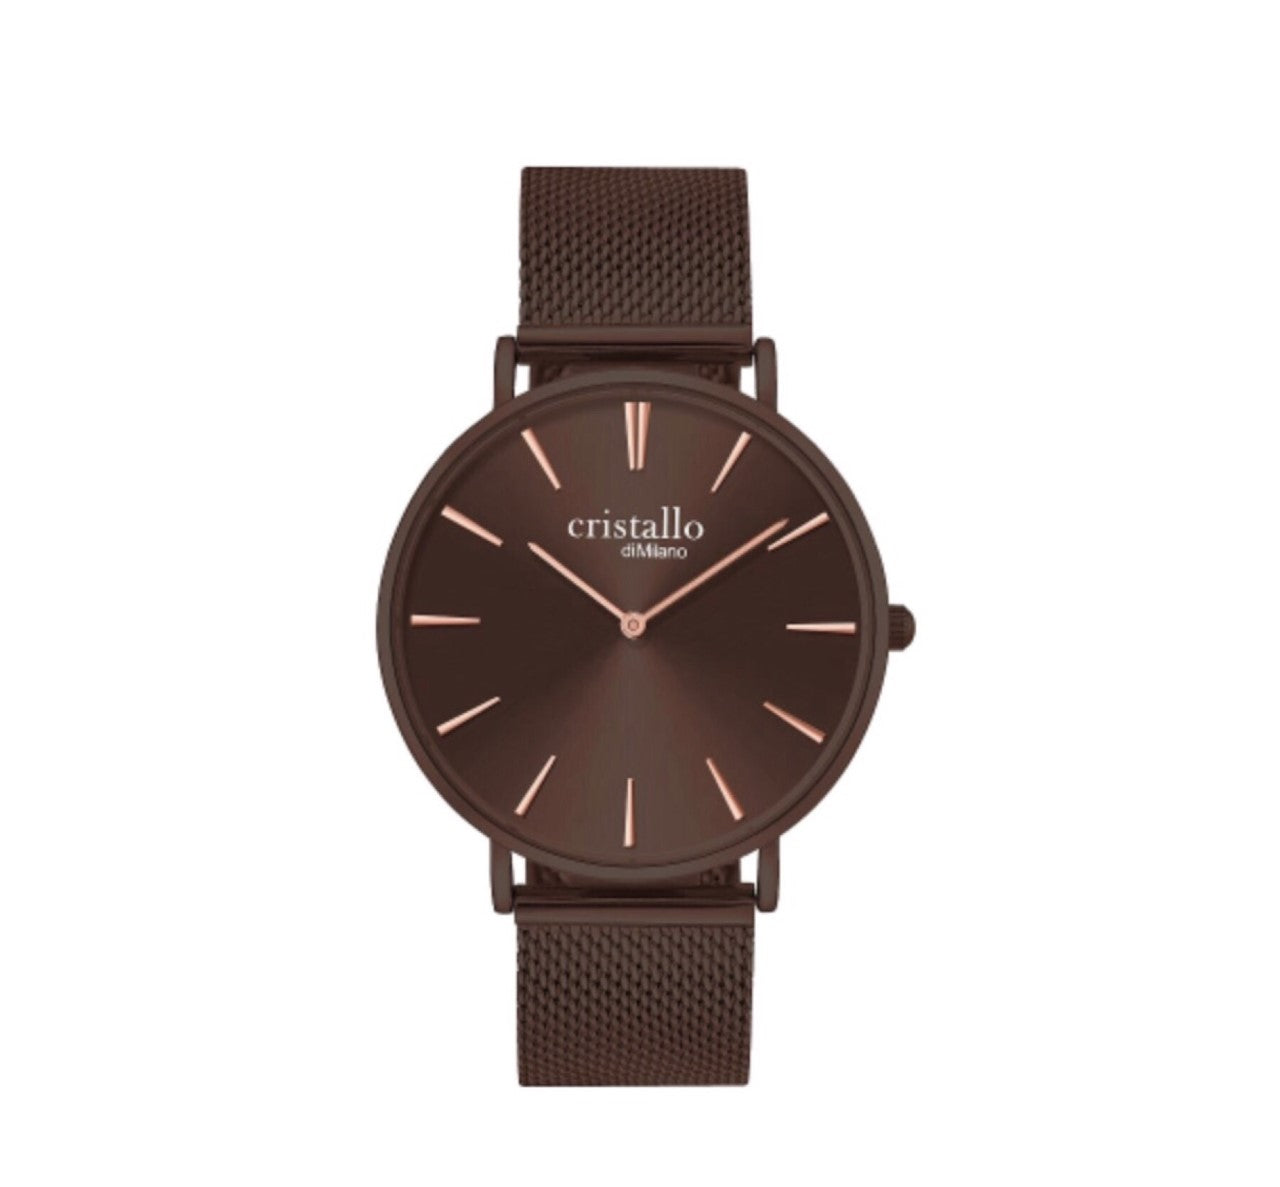 Cristallo di Milano Mocha Watch